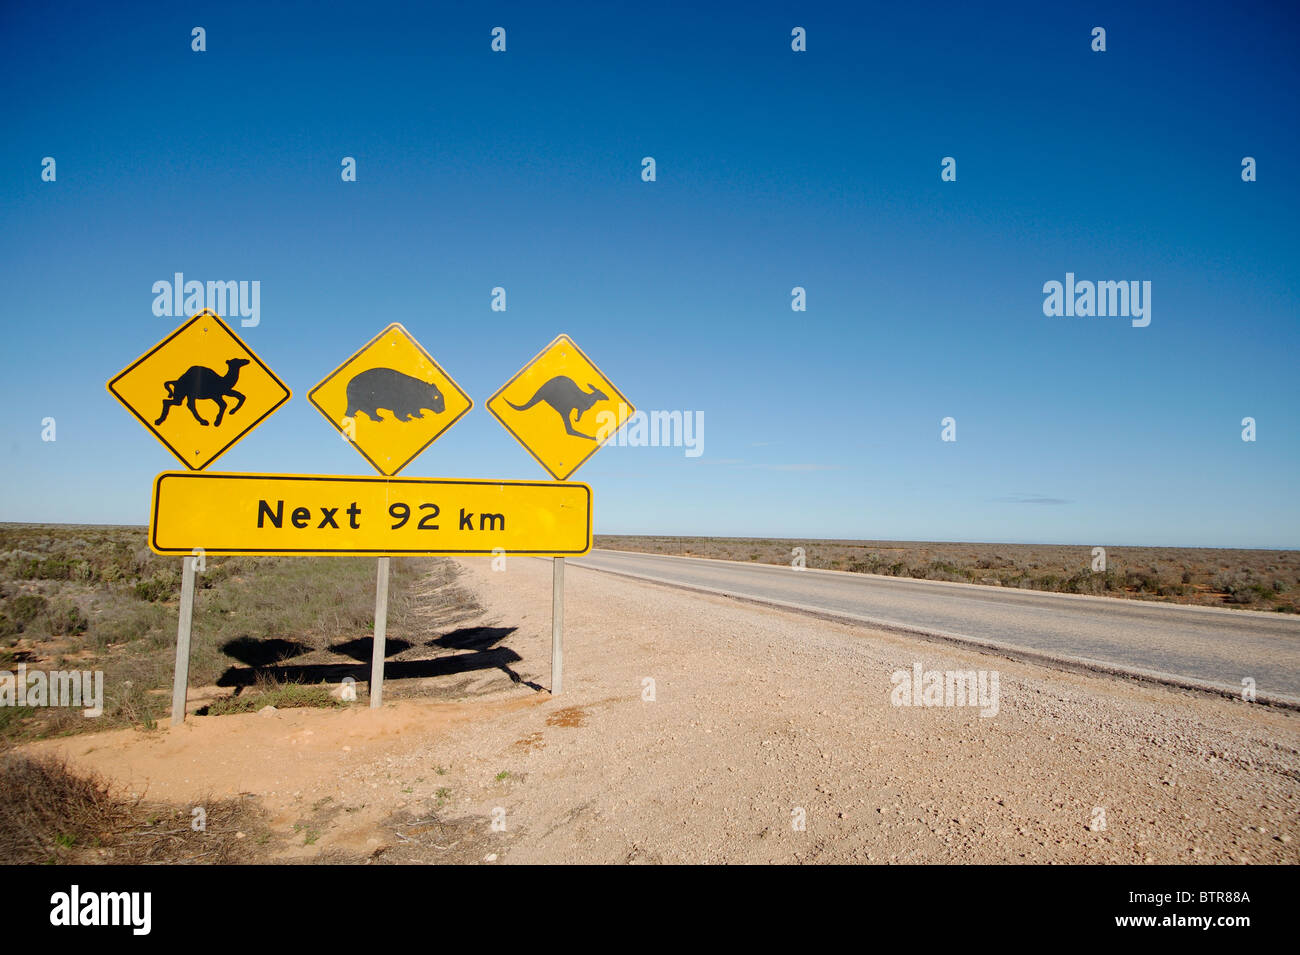 Australia, Nullabor, Animal crossing sign on road side - Stock Image